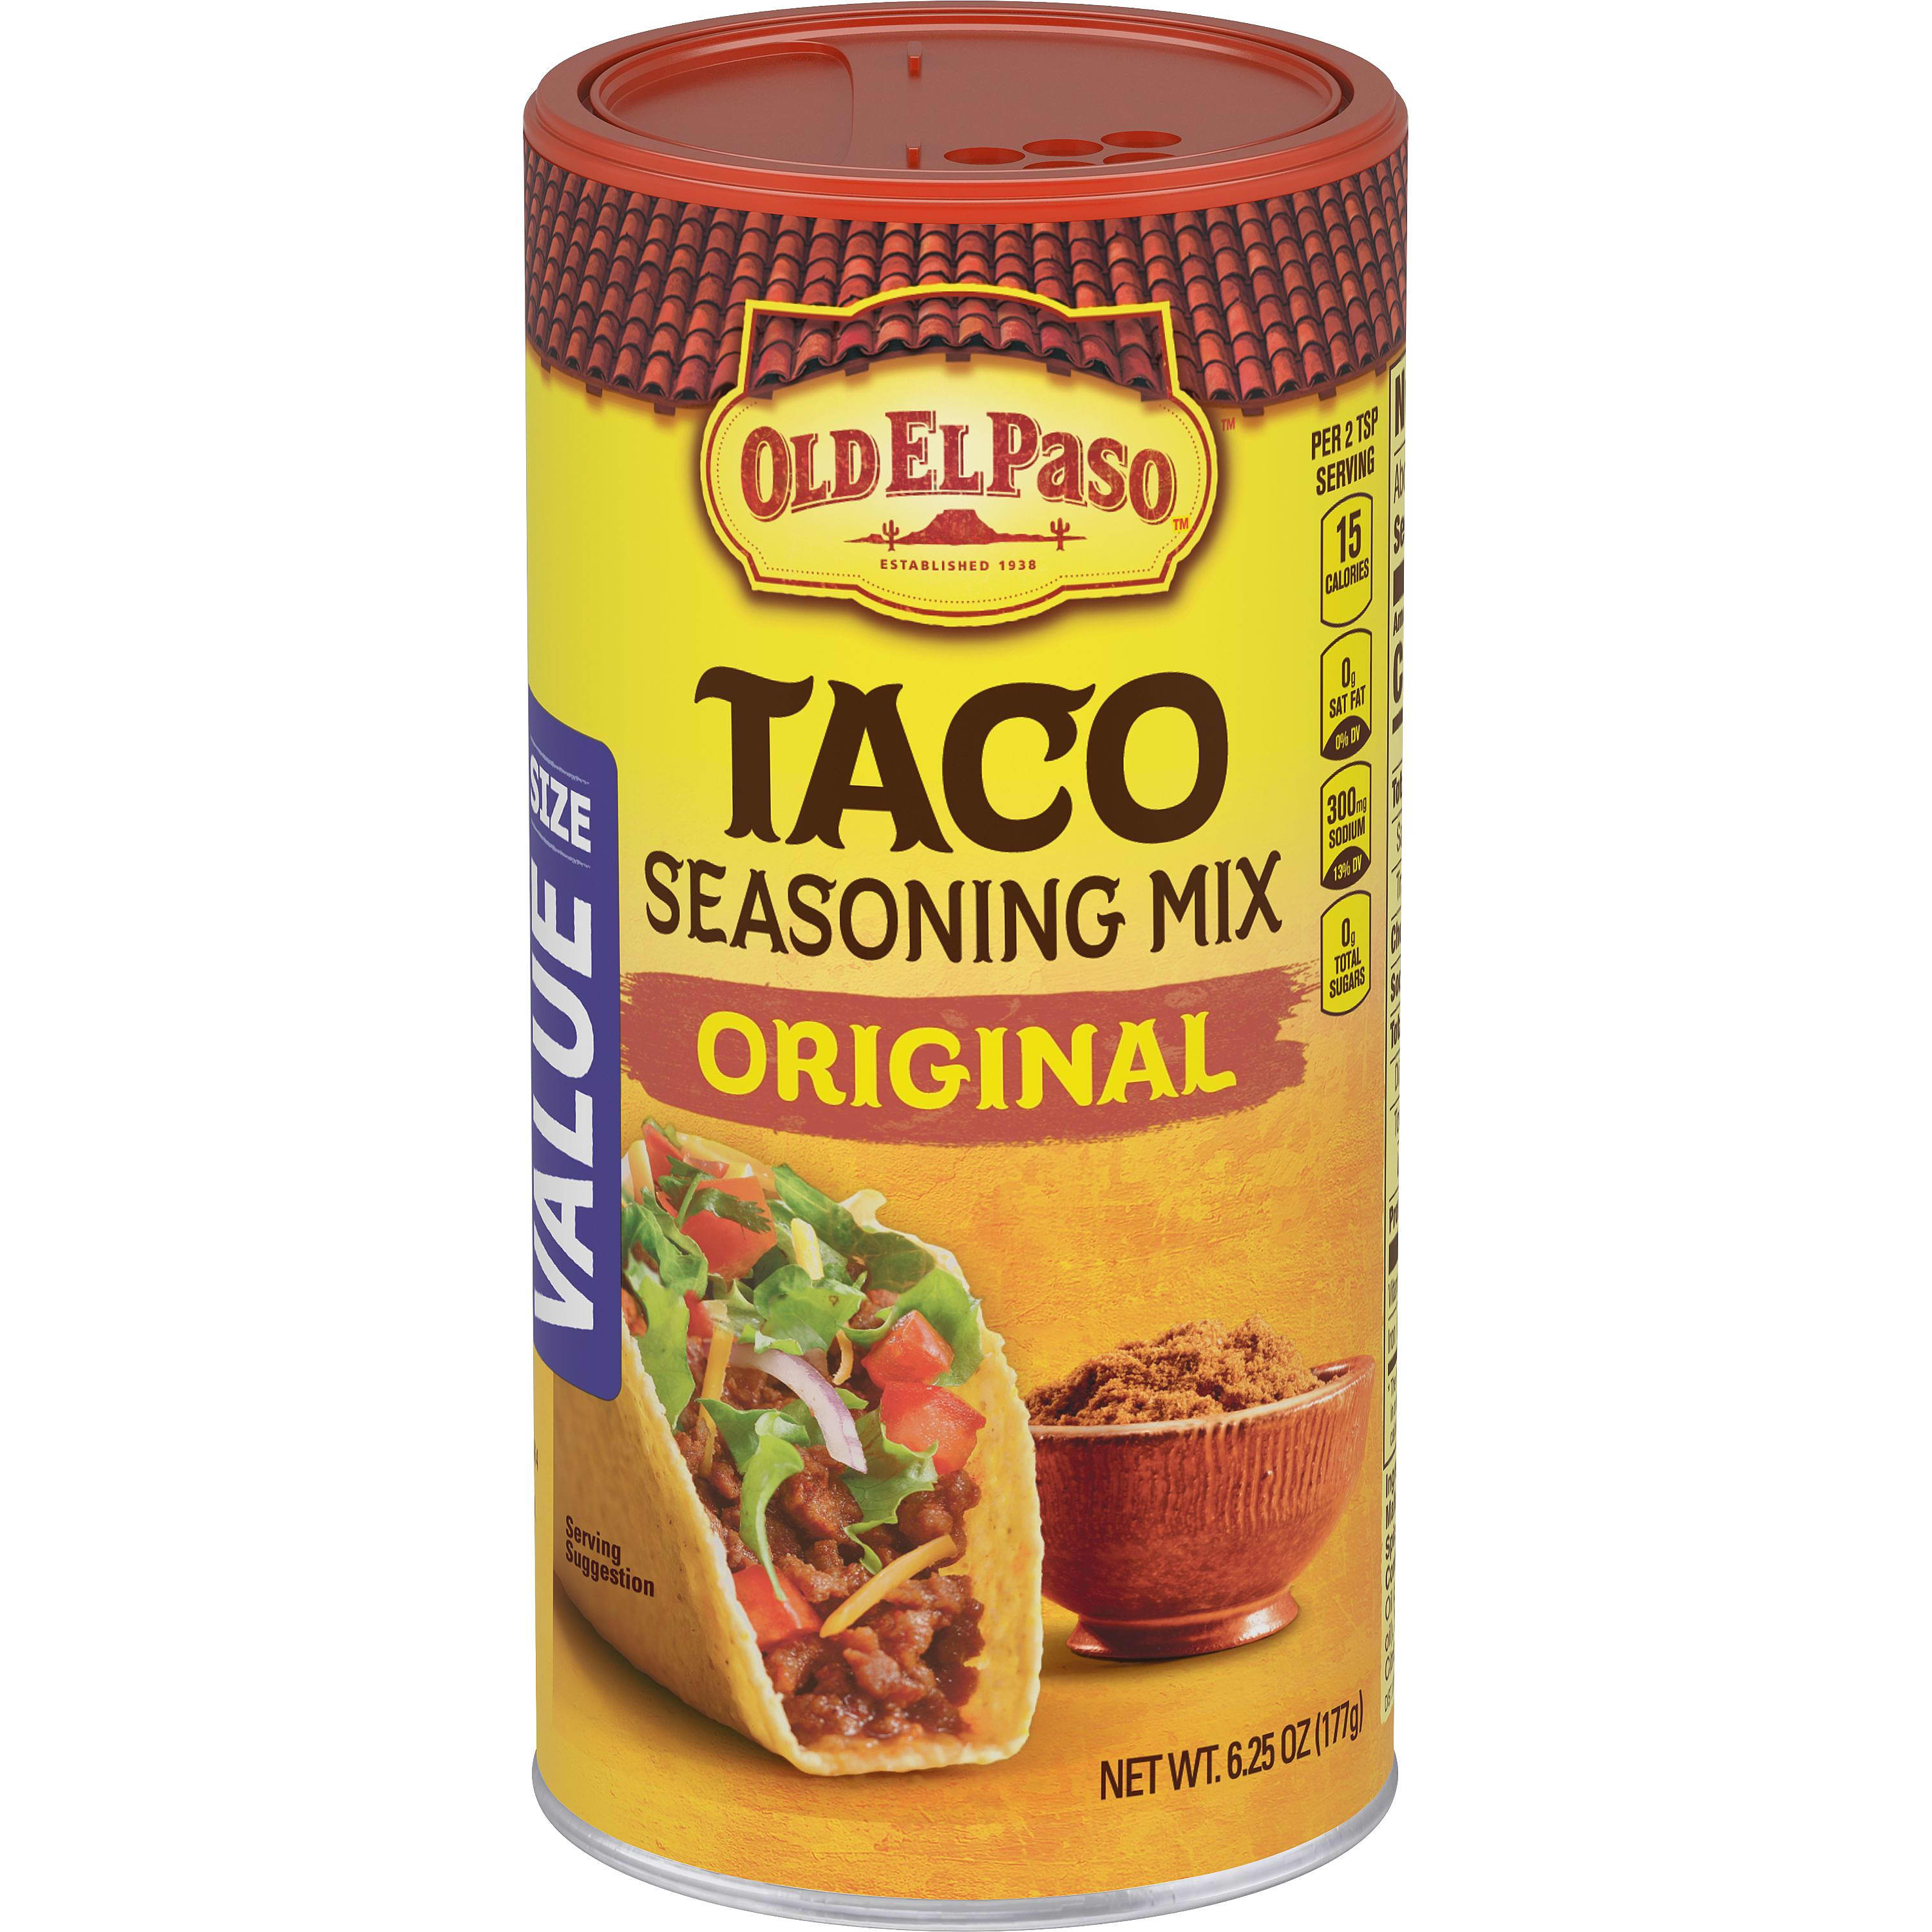 Taco Original Seasoning Mix Mexican Seasoning Old El Paso